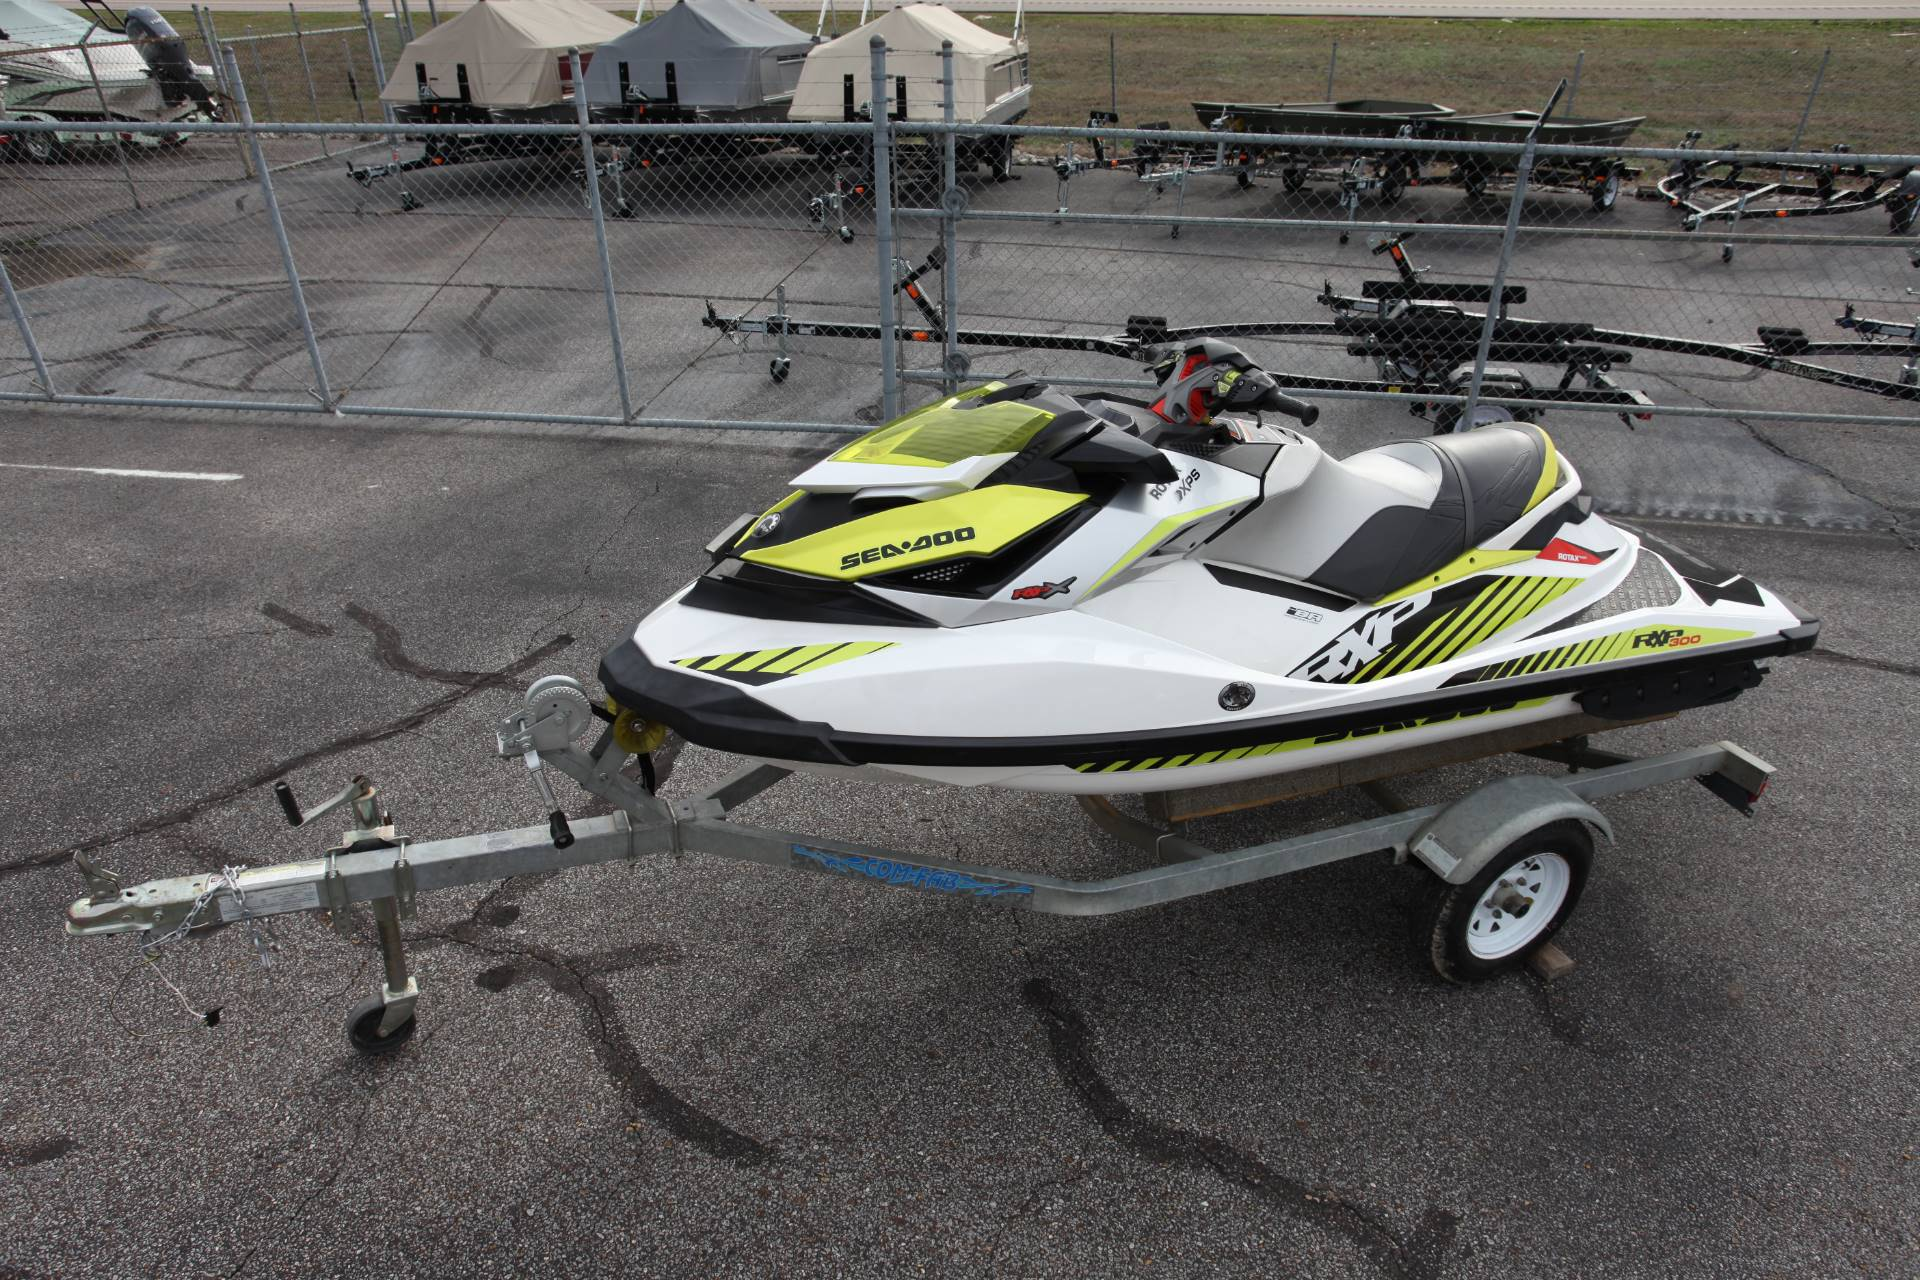 2017 Sea-Doo RXP-X 300 in Memphis, Tennessee - Photo 2